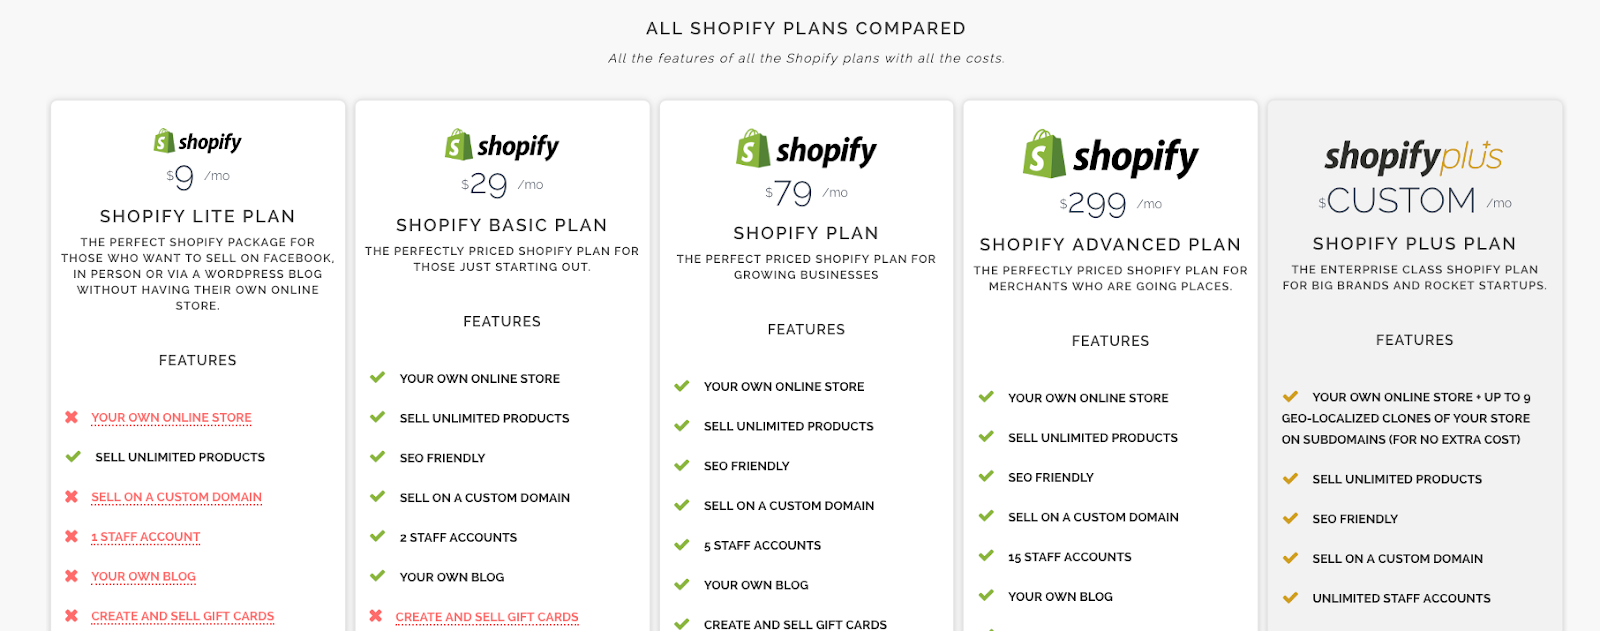 Shopify Plus Pricing